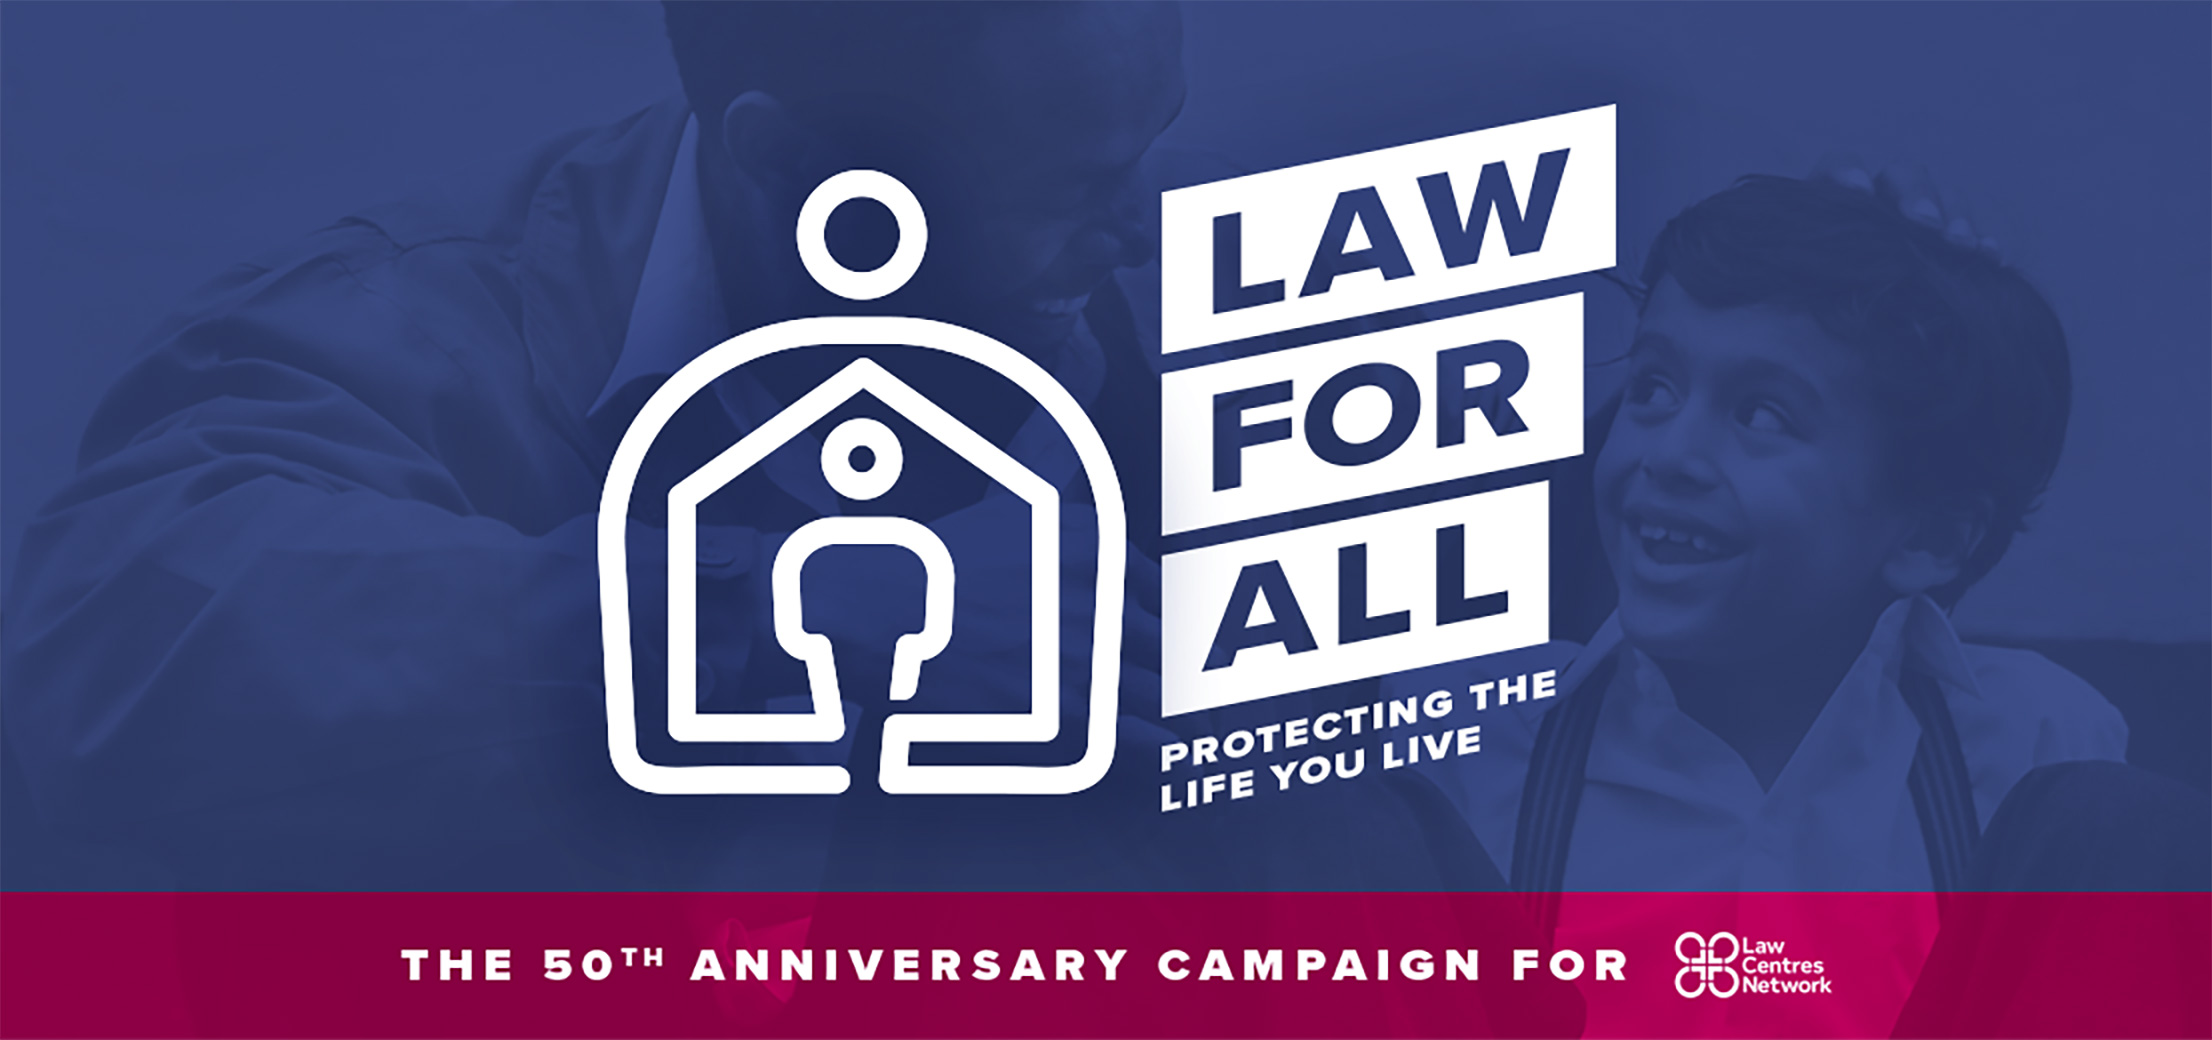 LAW FOR ALL - Protecting the life you live